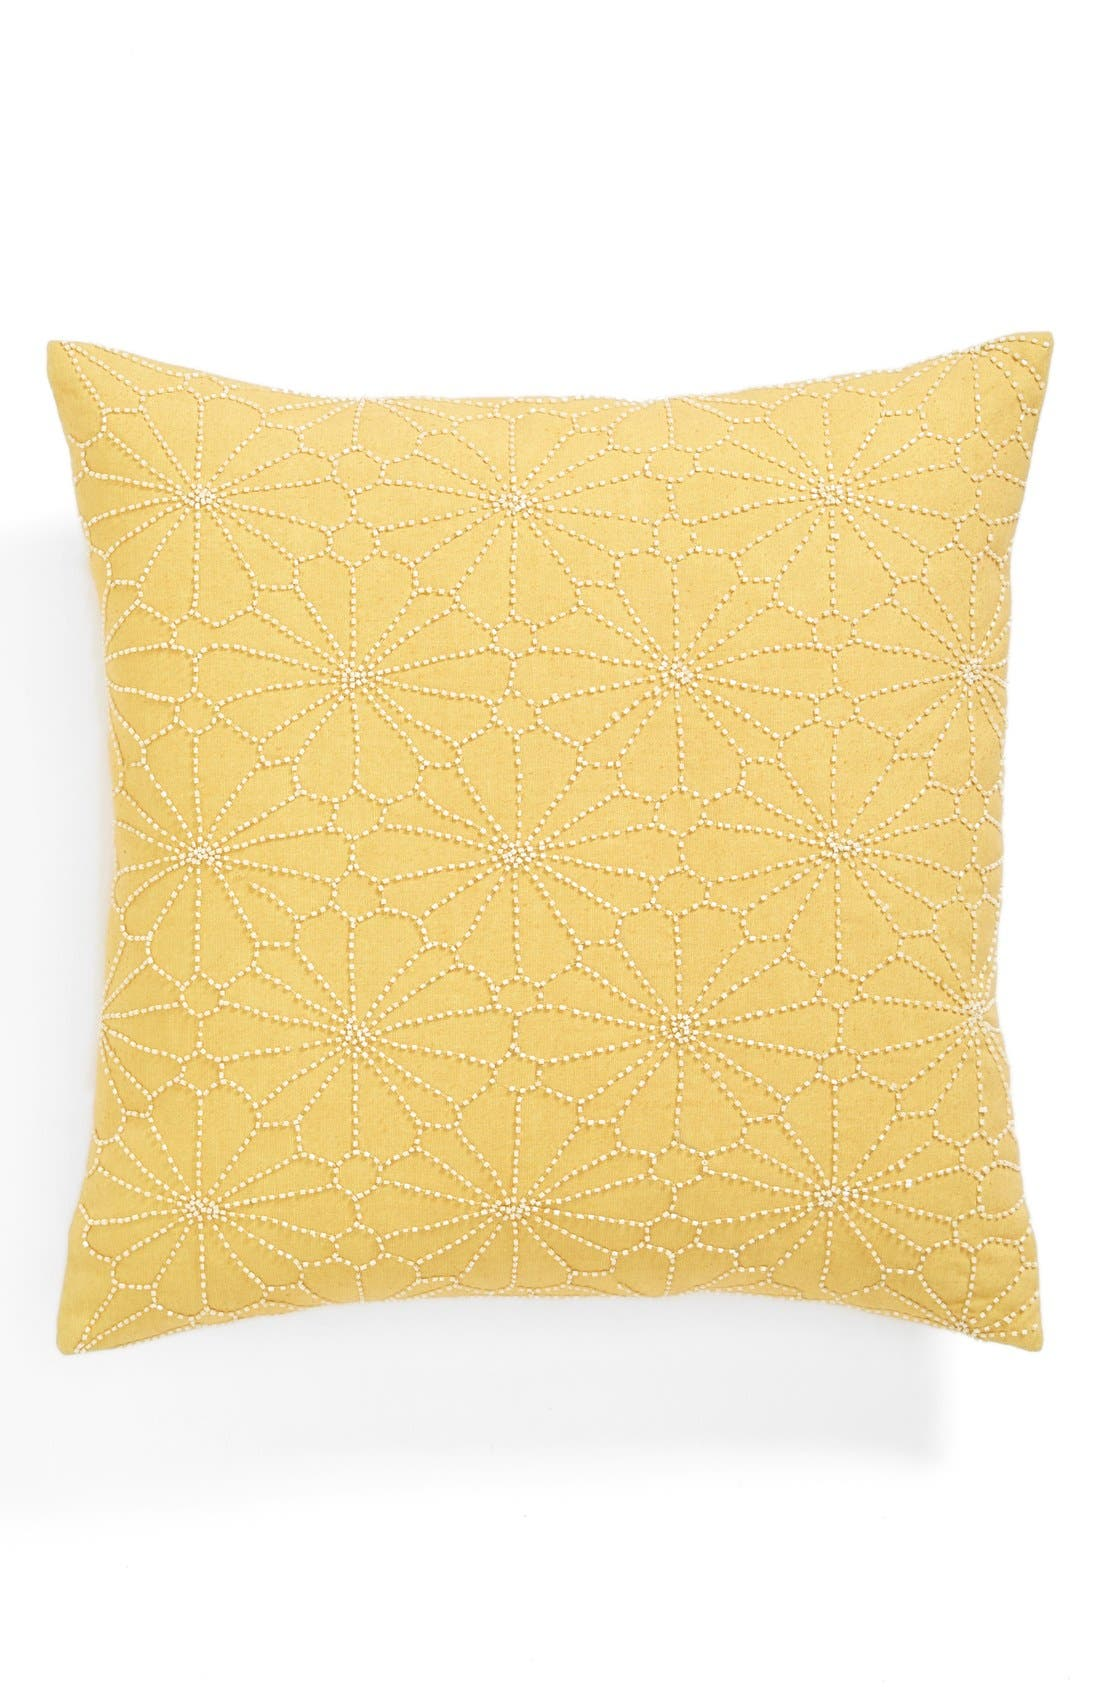 Alternate Image 1 Selected - Nordstrom at Home Beaded Lantern Pillow